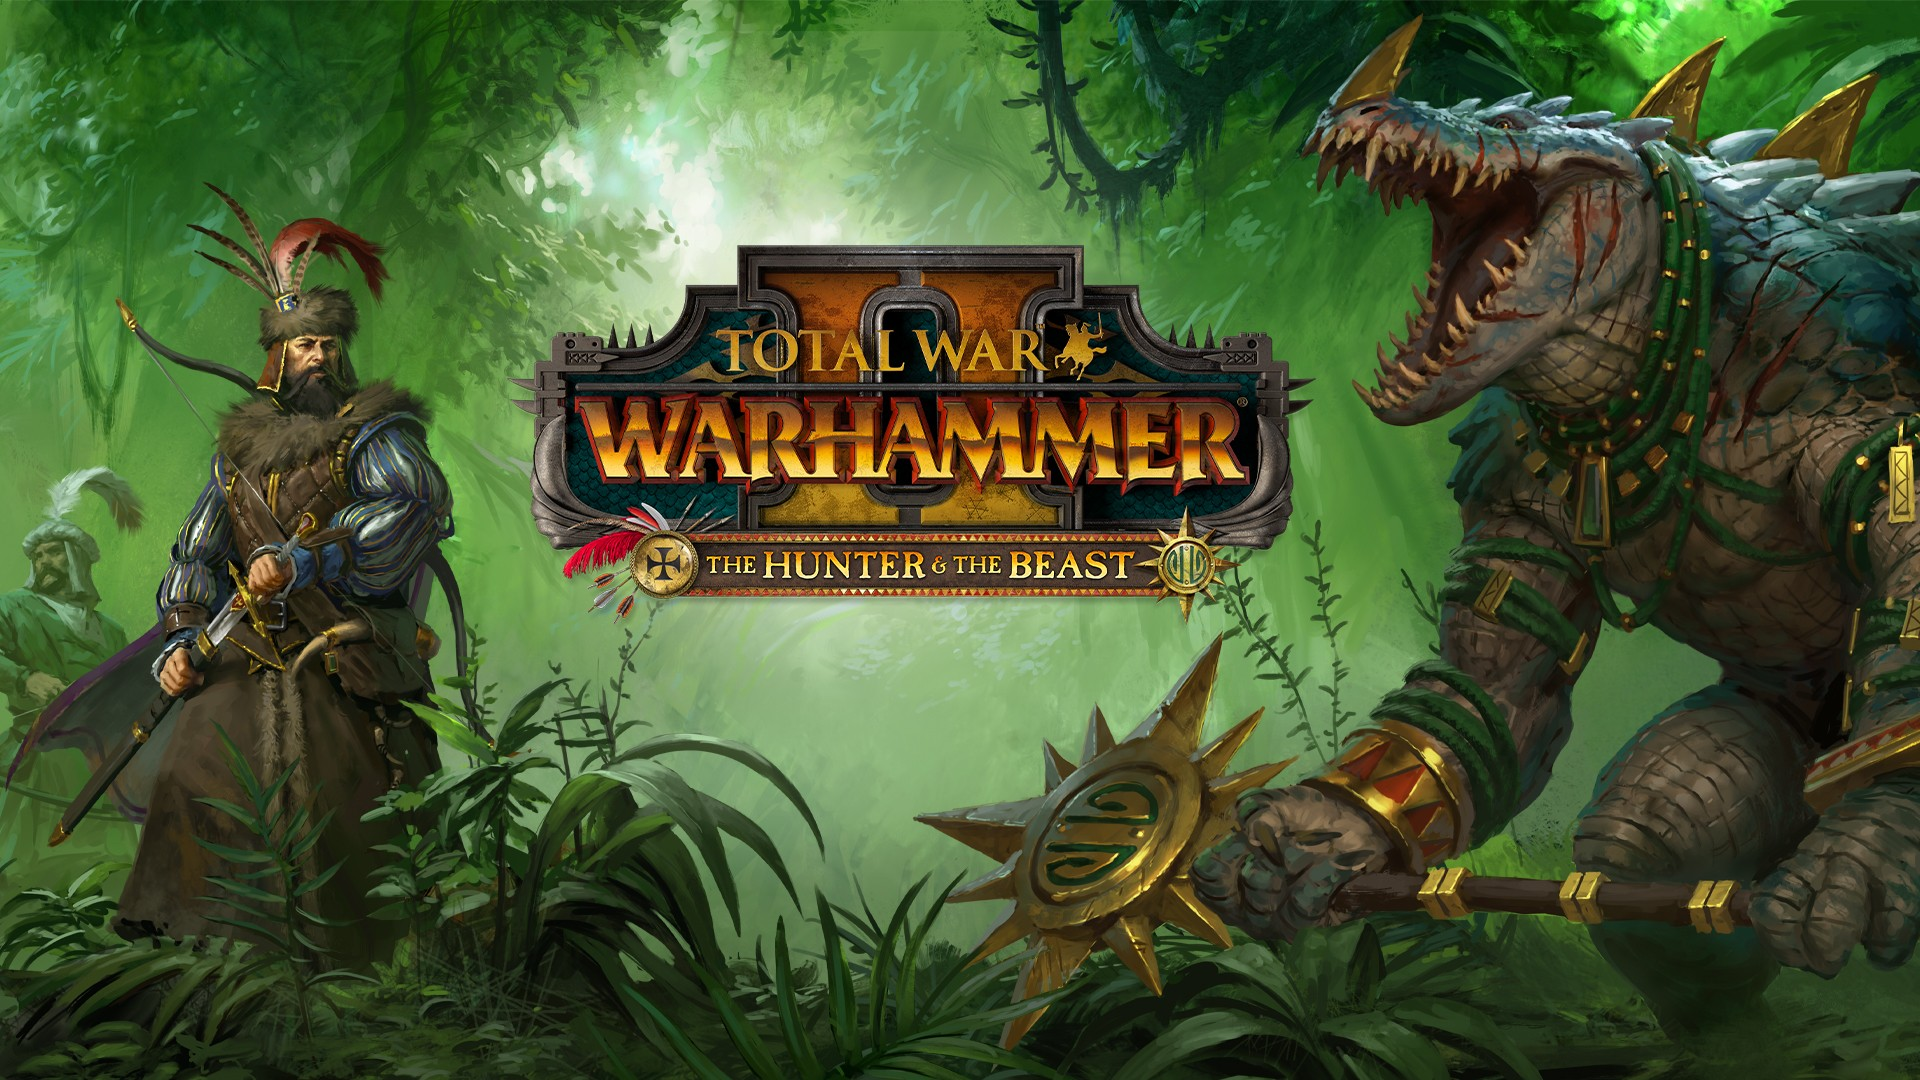 Total war: warhammer ii - the hunter & the beast download free pc game